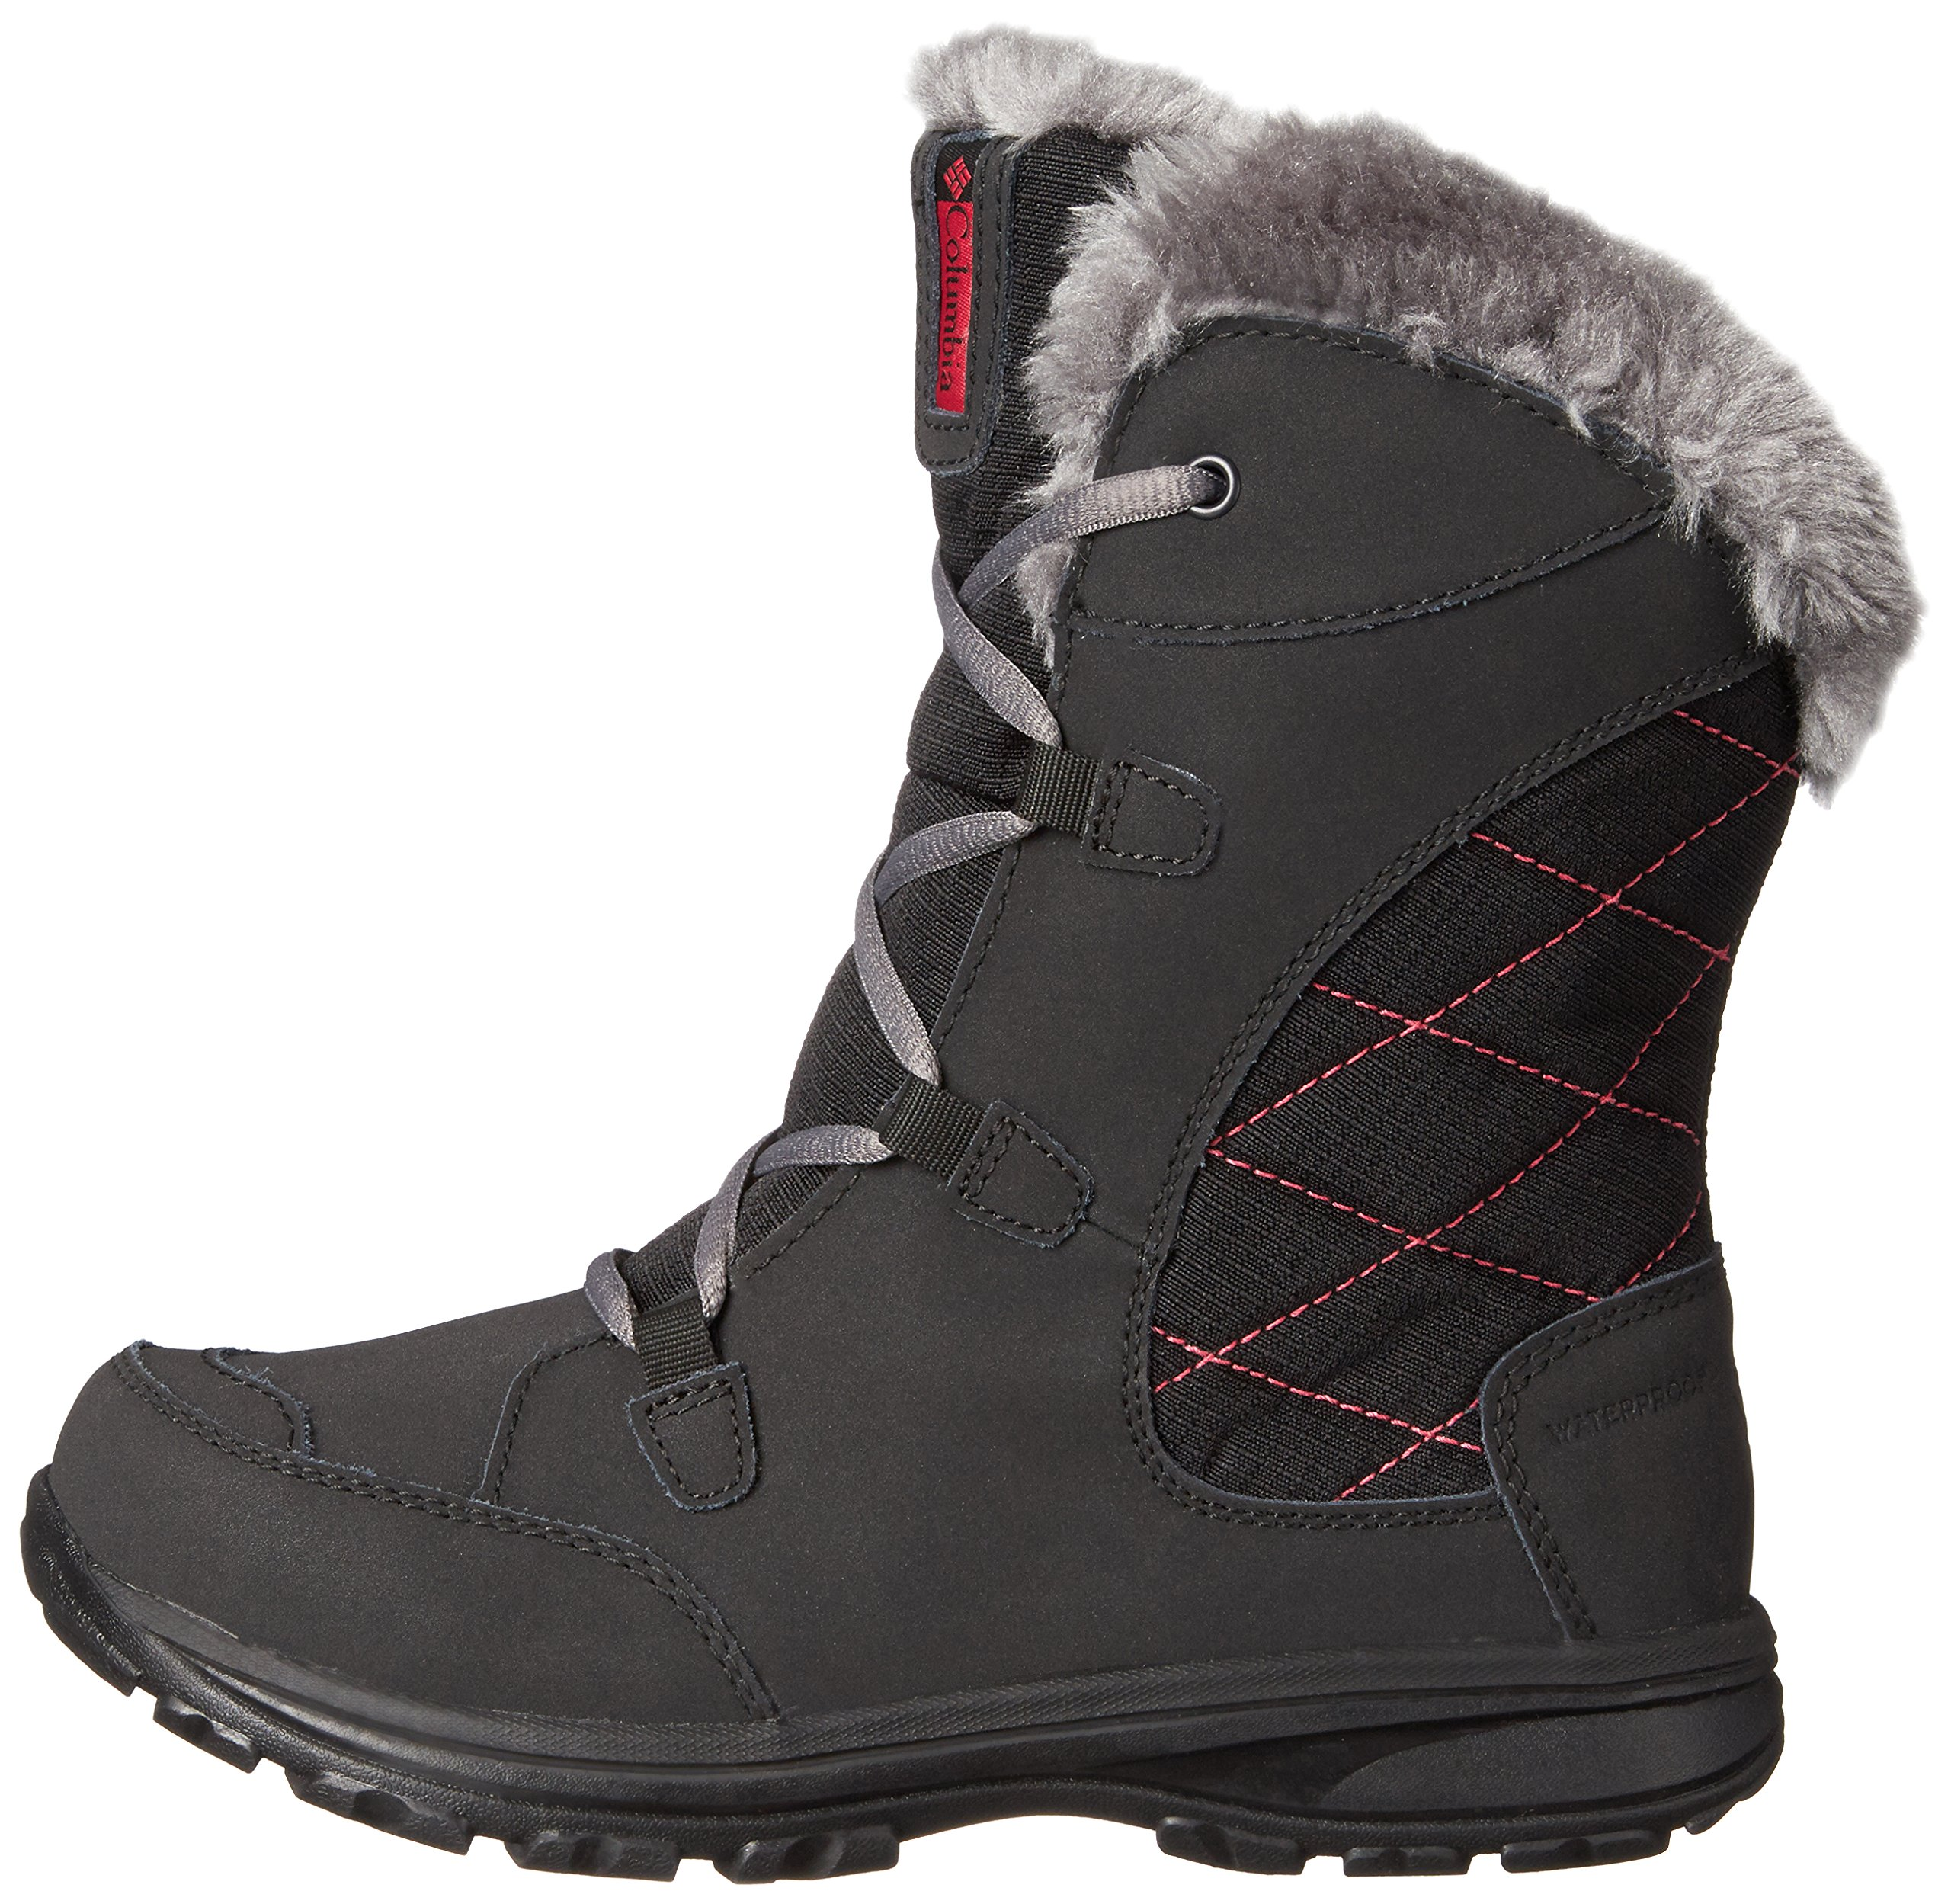 Columbia Youth Ice Maiden Lace Winter Boot (Little Kid/Big Kid), Black, 1 M US Little Kid by Columbia (Image #5)